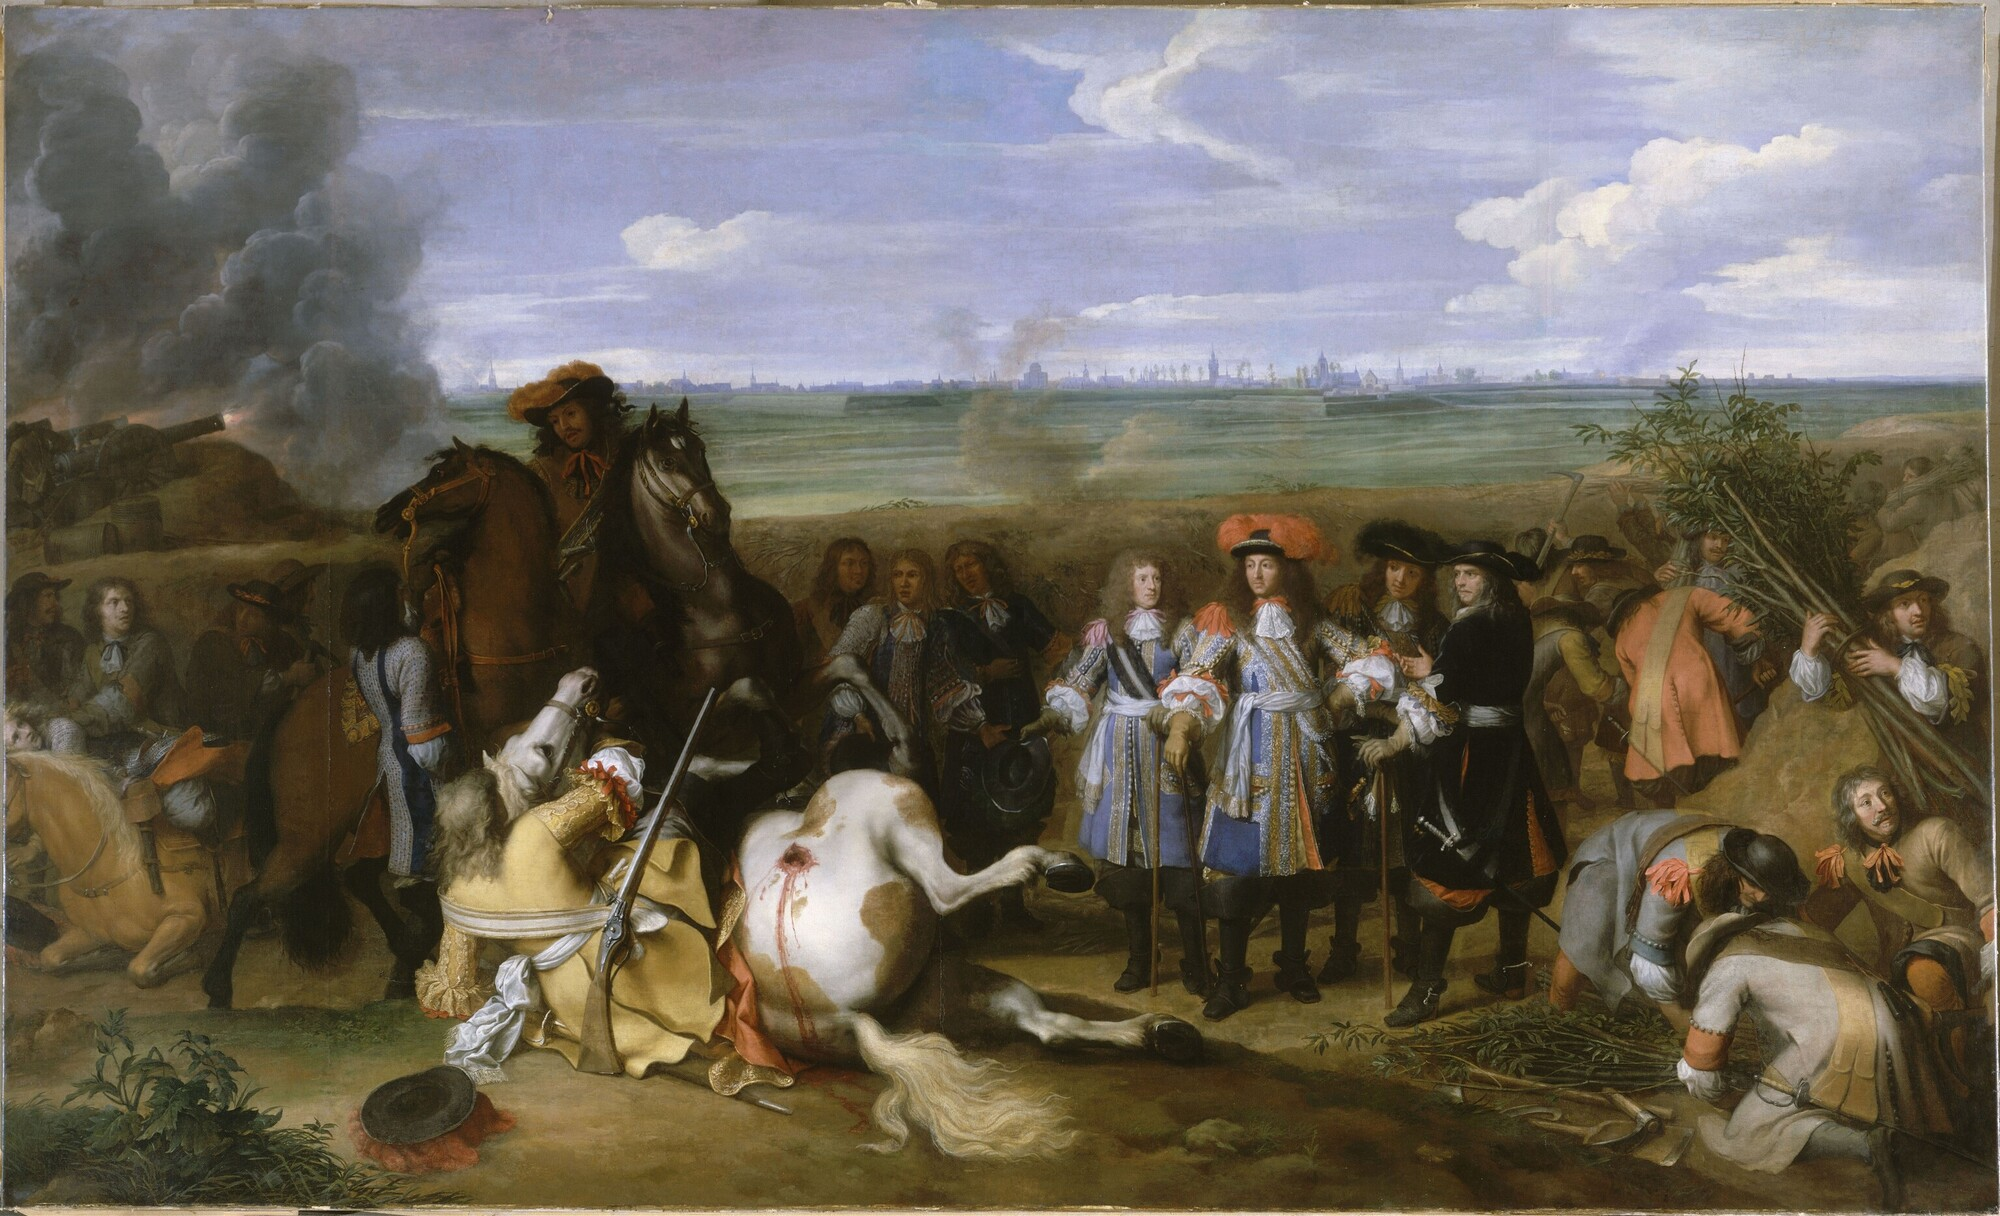 File:LeBrun Louis XIV at Douai in the War of Devolution 1667.jpg